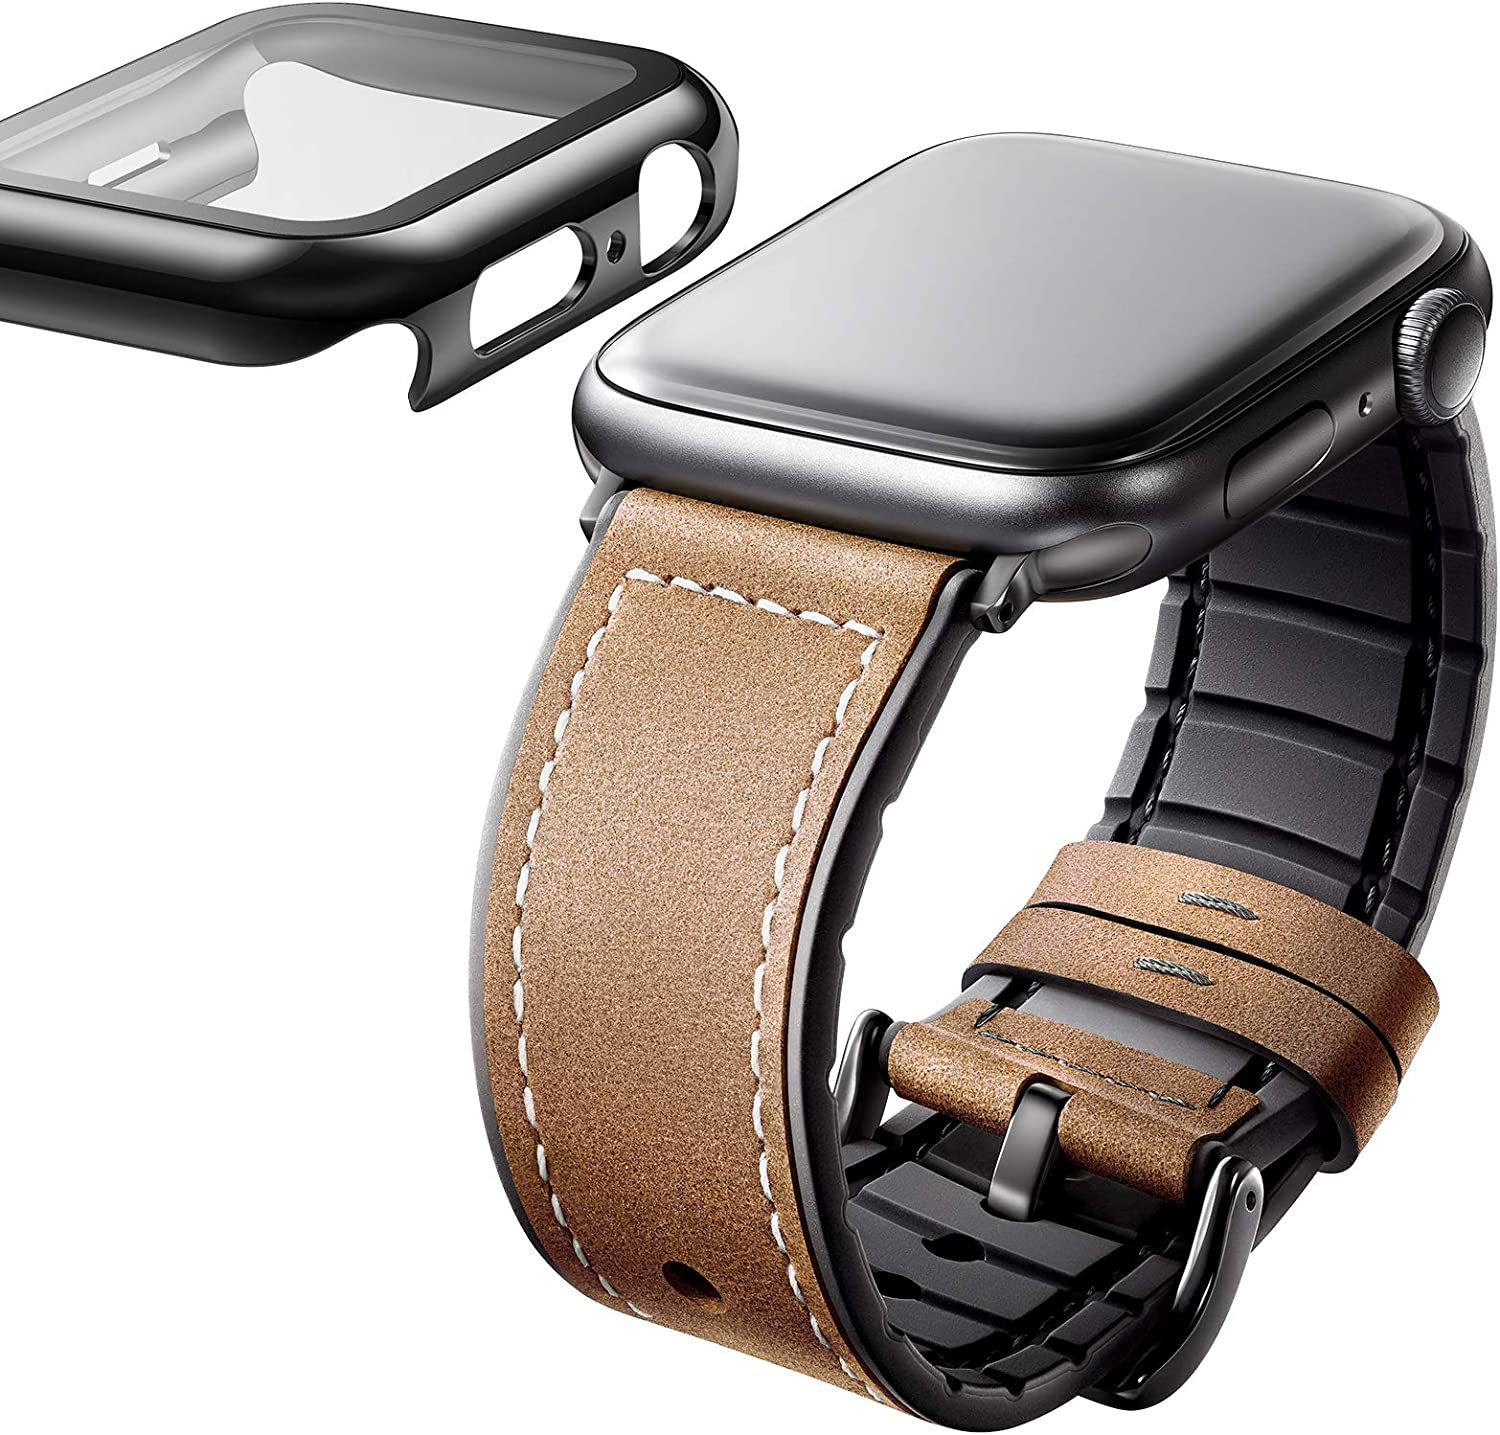 Adepoy Bands Compatible for Apple Watch Band 44mm 42mm 40mm 38mm, Leather Apple watch Bands for Man Women iWatch Series 6/5/4/3/2/1/Se, Genuine Leather Strap with Tempered glass screen protector